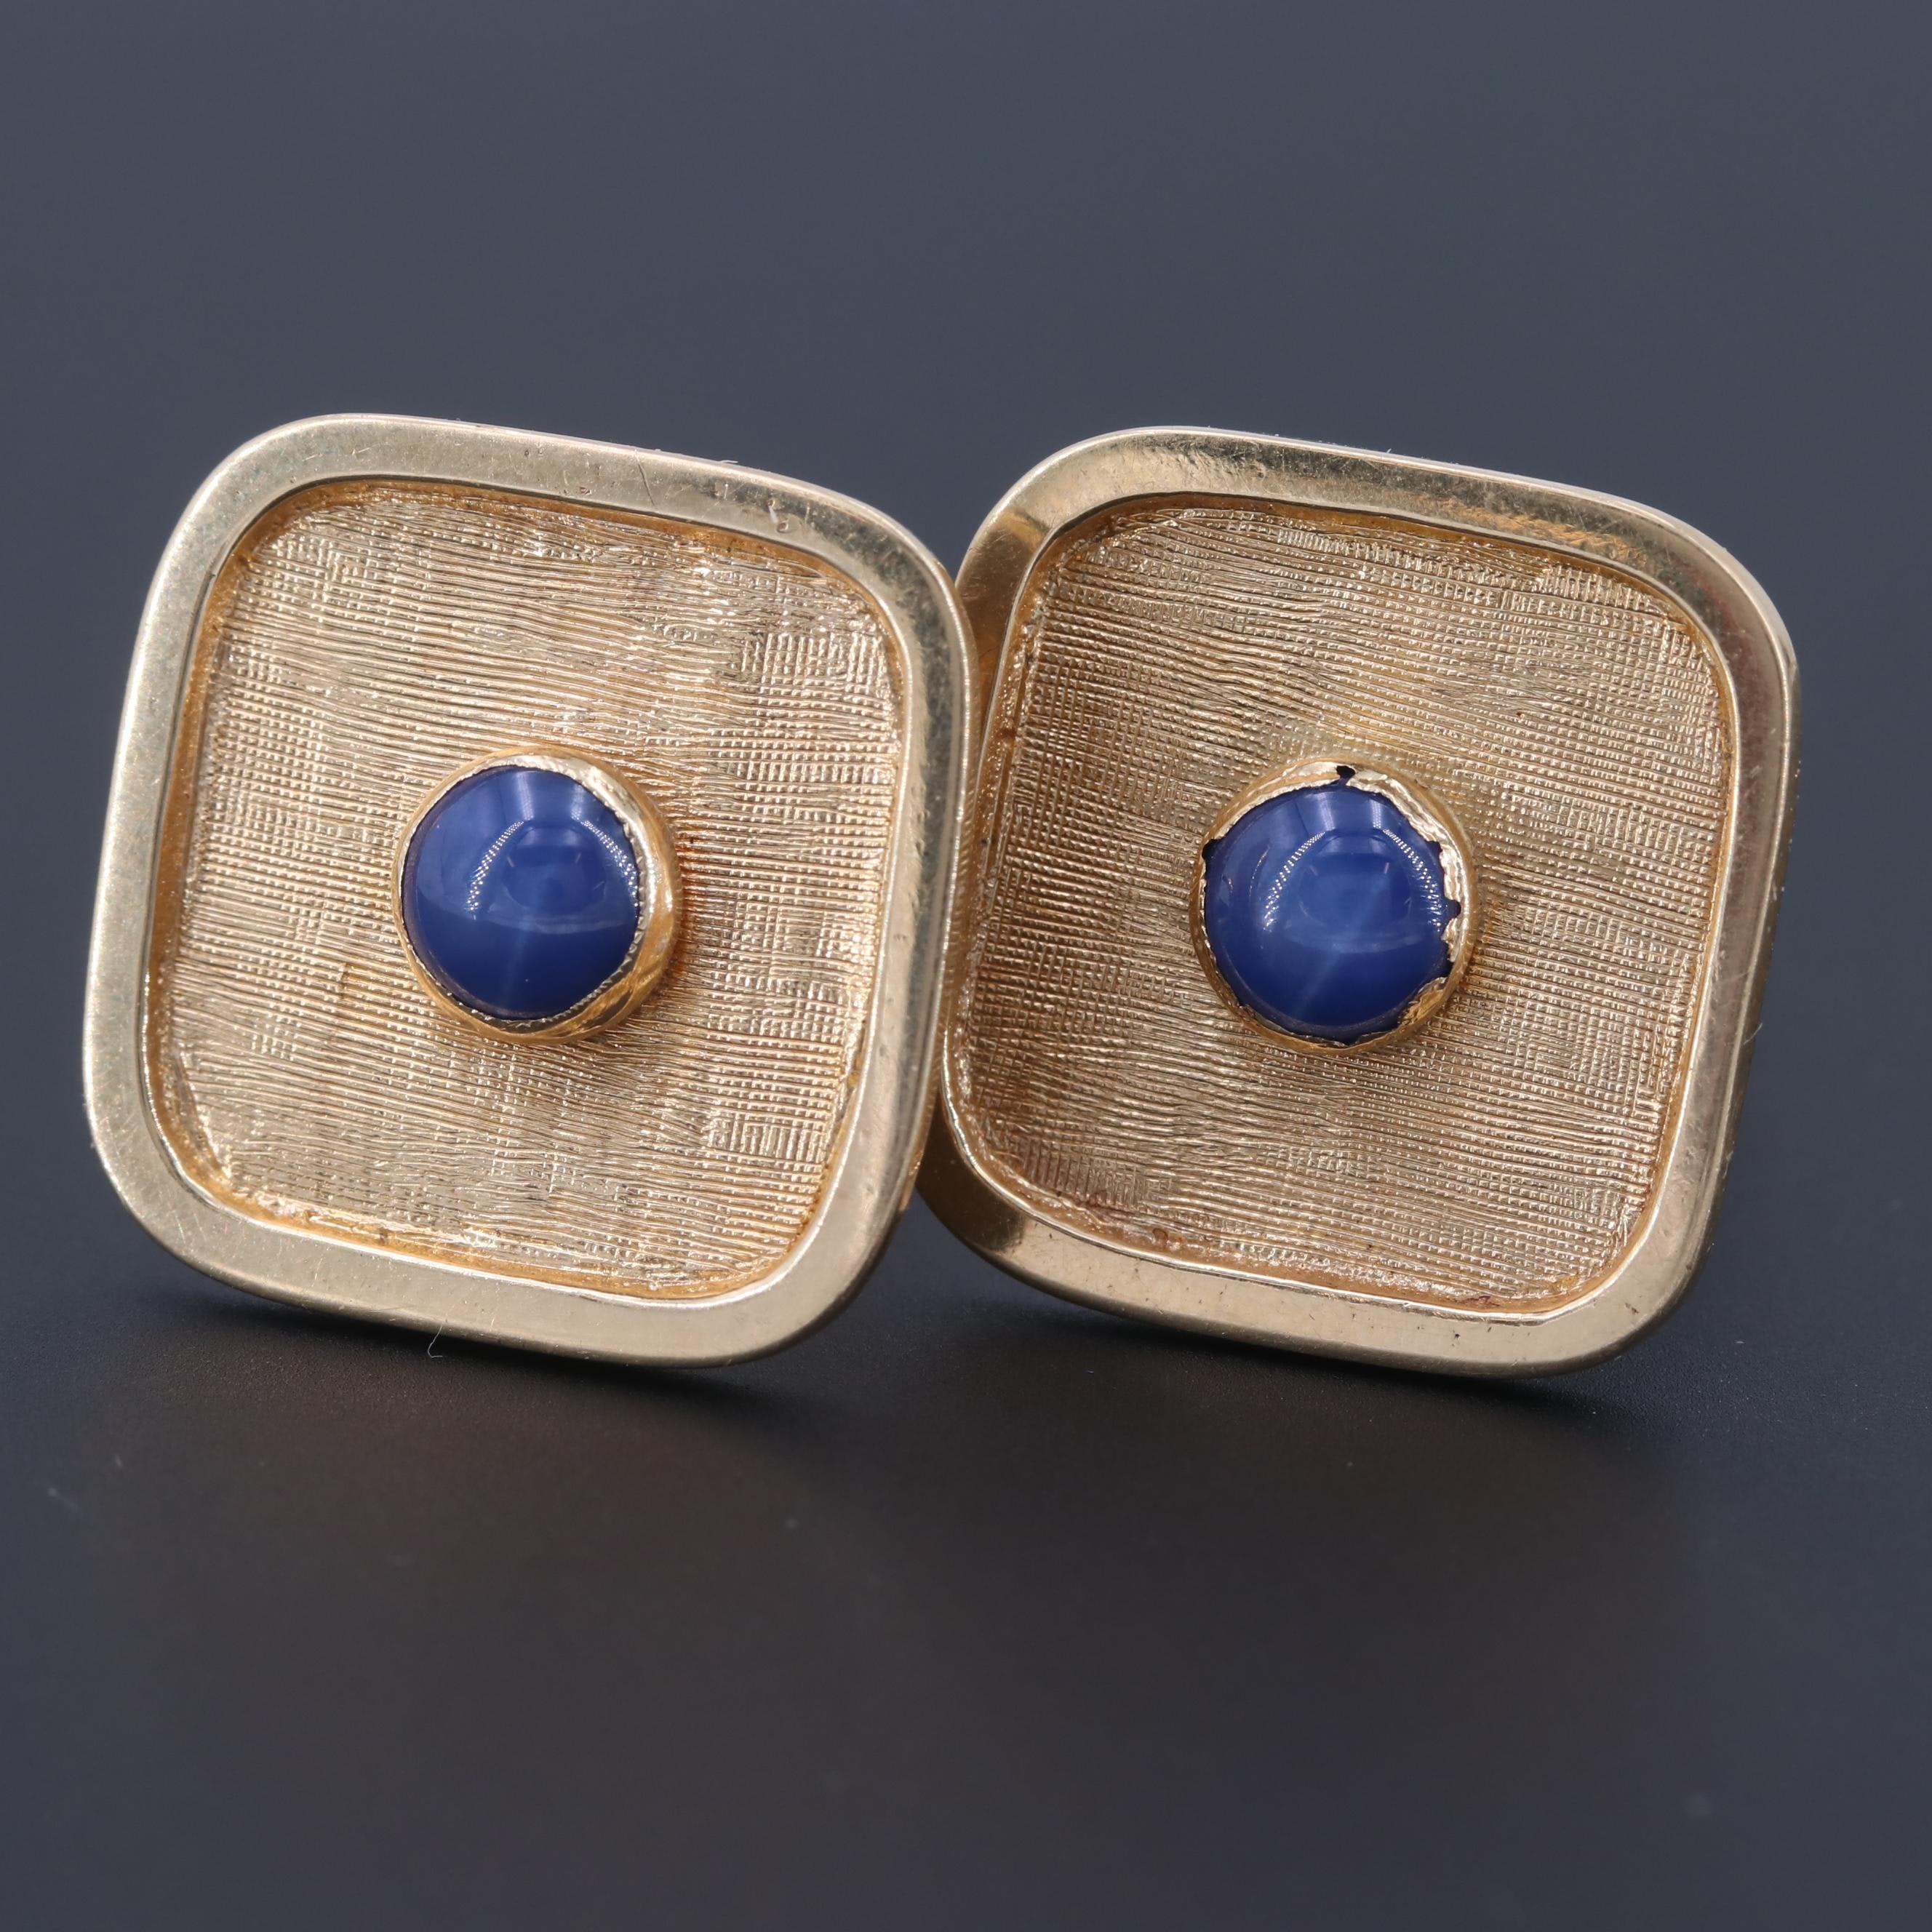 14K Yellow Gold Synthetic Star Sapphire Cufflinks with Florentine Finish